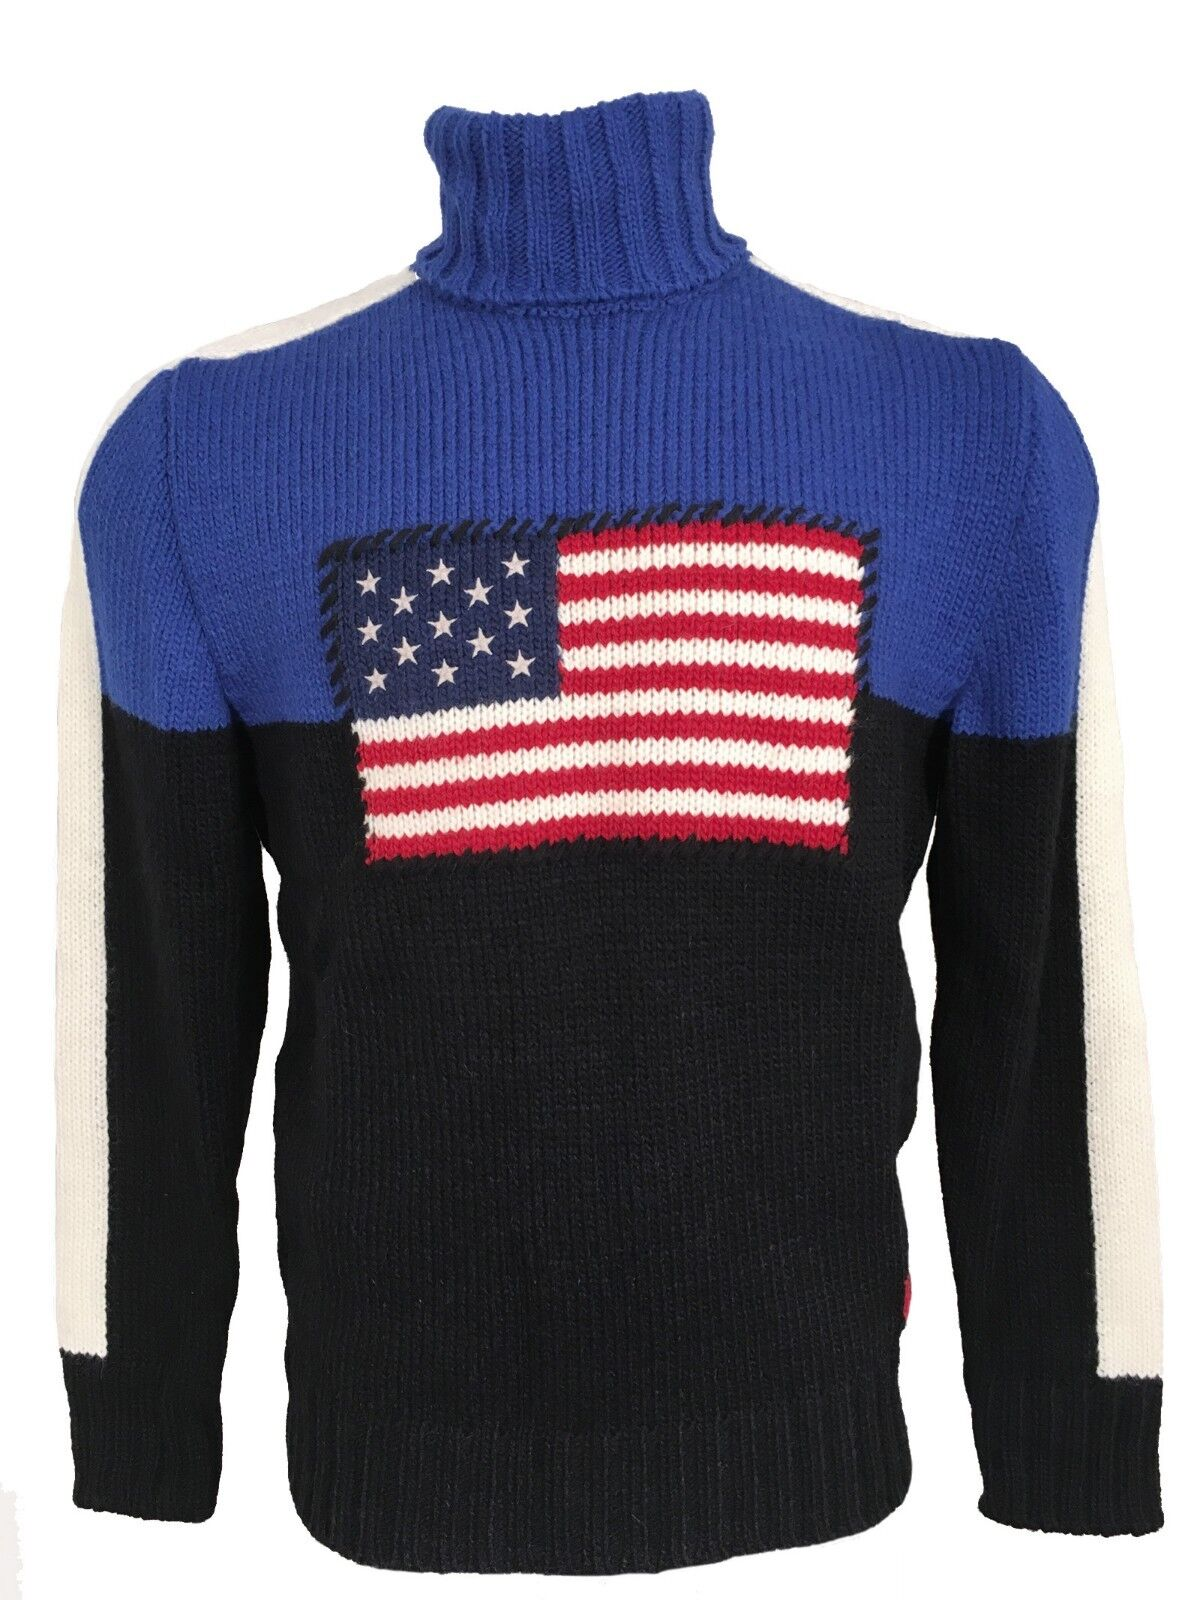 NEW 395 Polo Ralph Lauren US Flag Sweater   Huge US Flag   RARE Made in USA